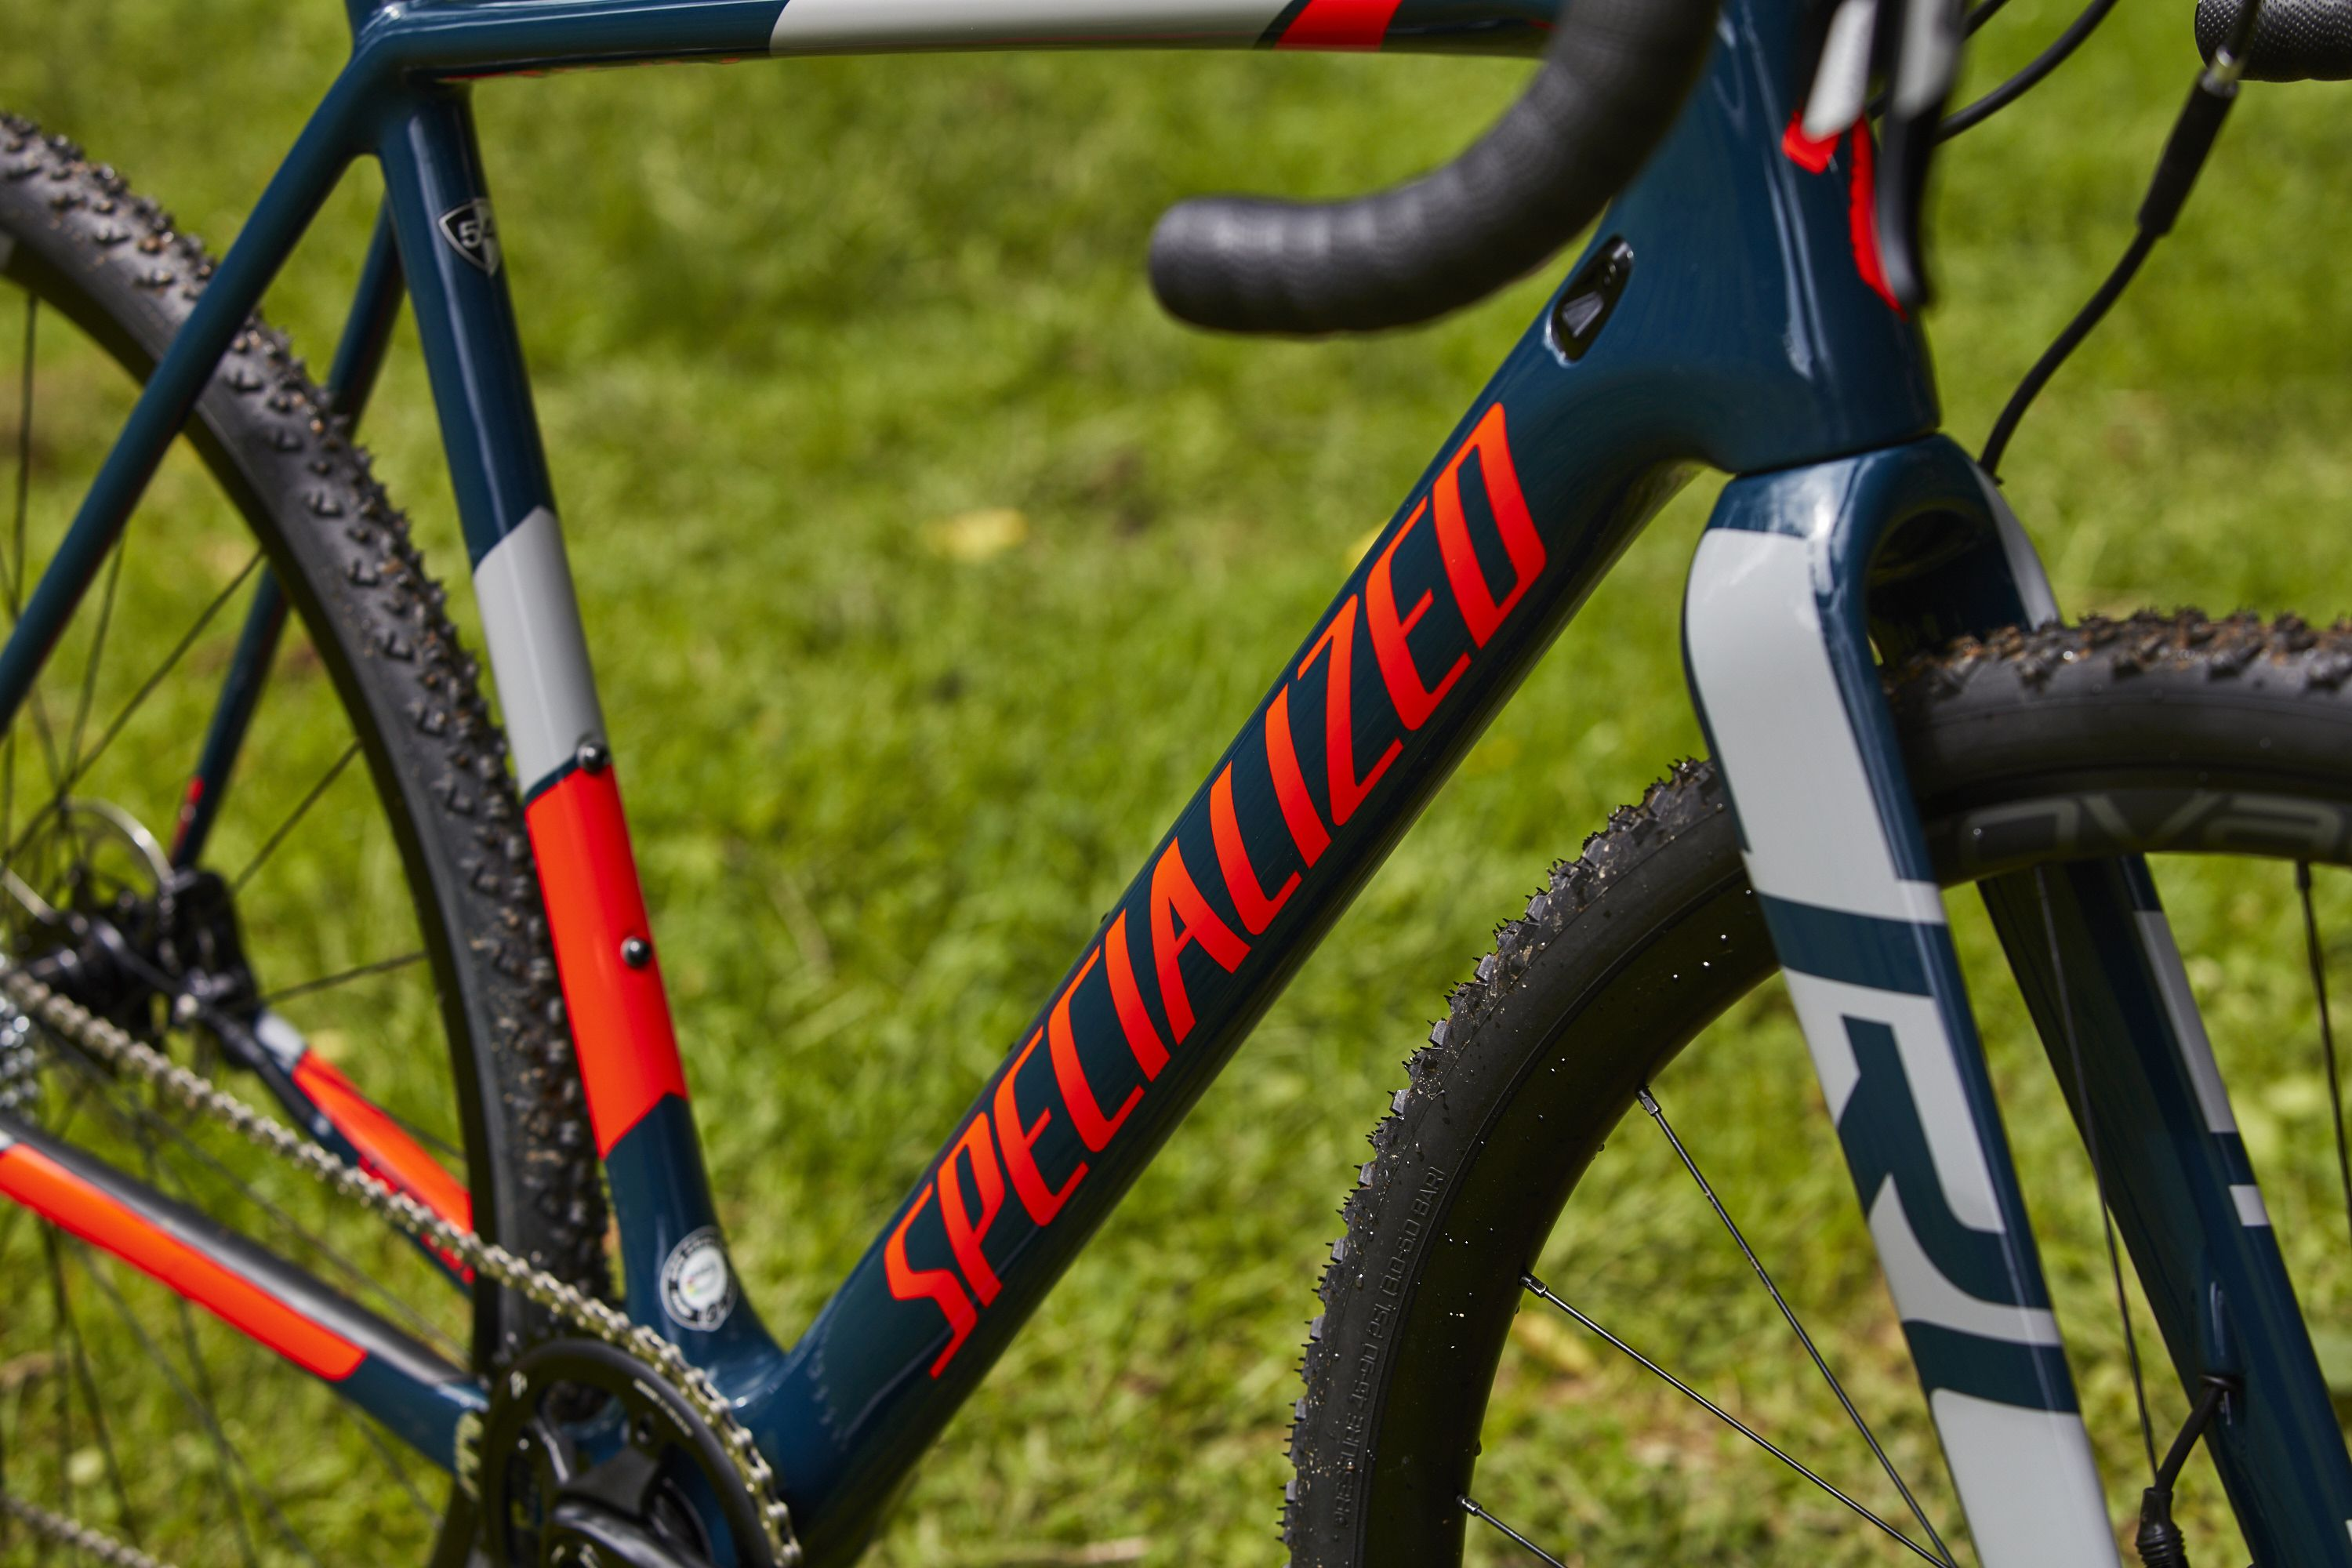 Specialized Bike Reviews | Specialized Mountain and Road